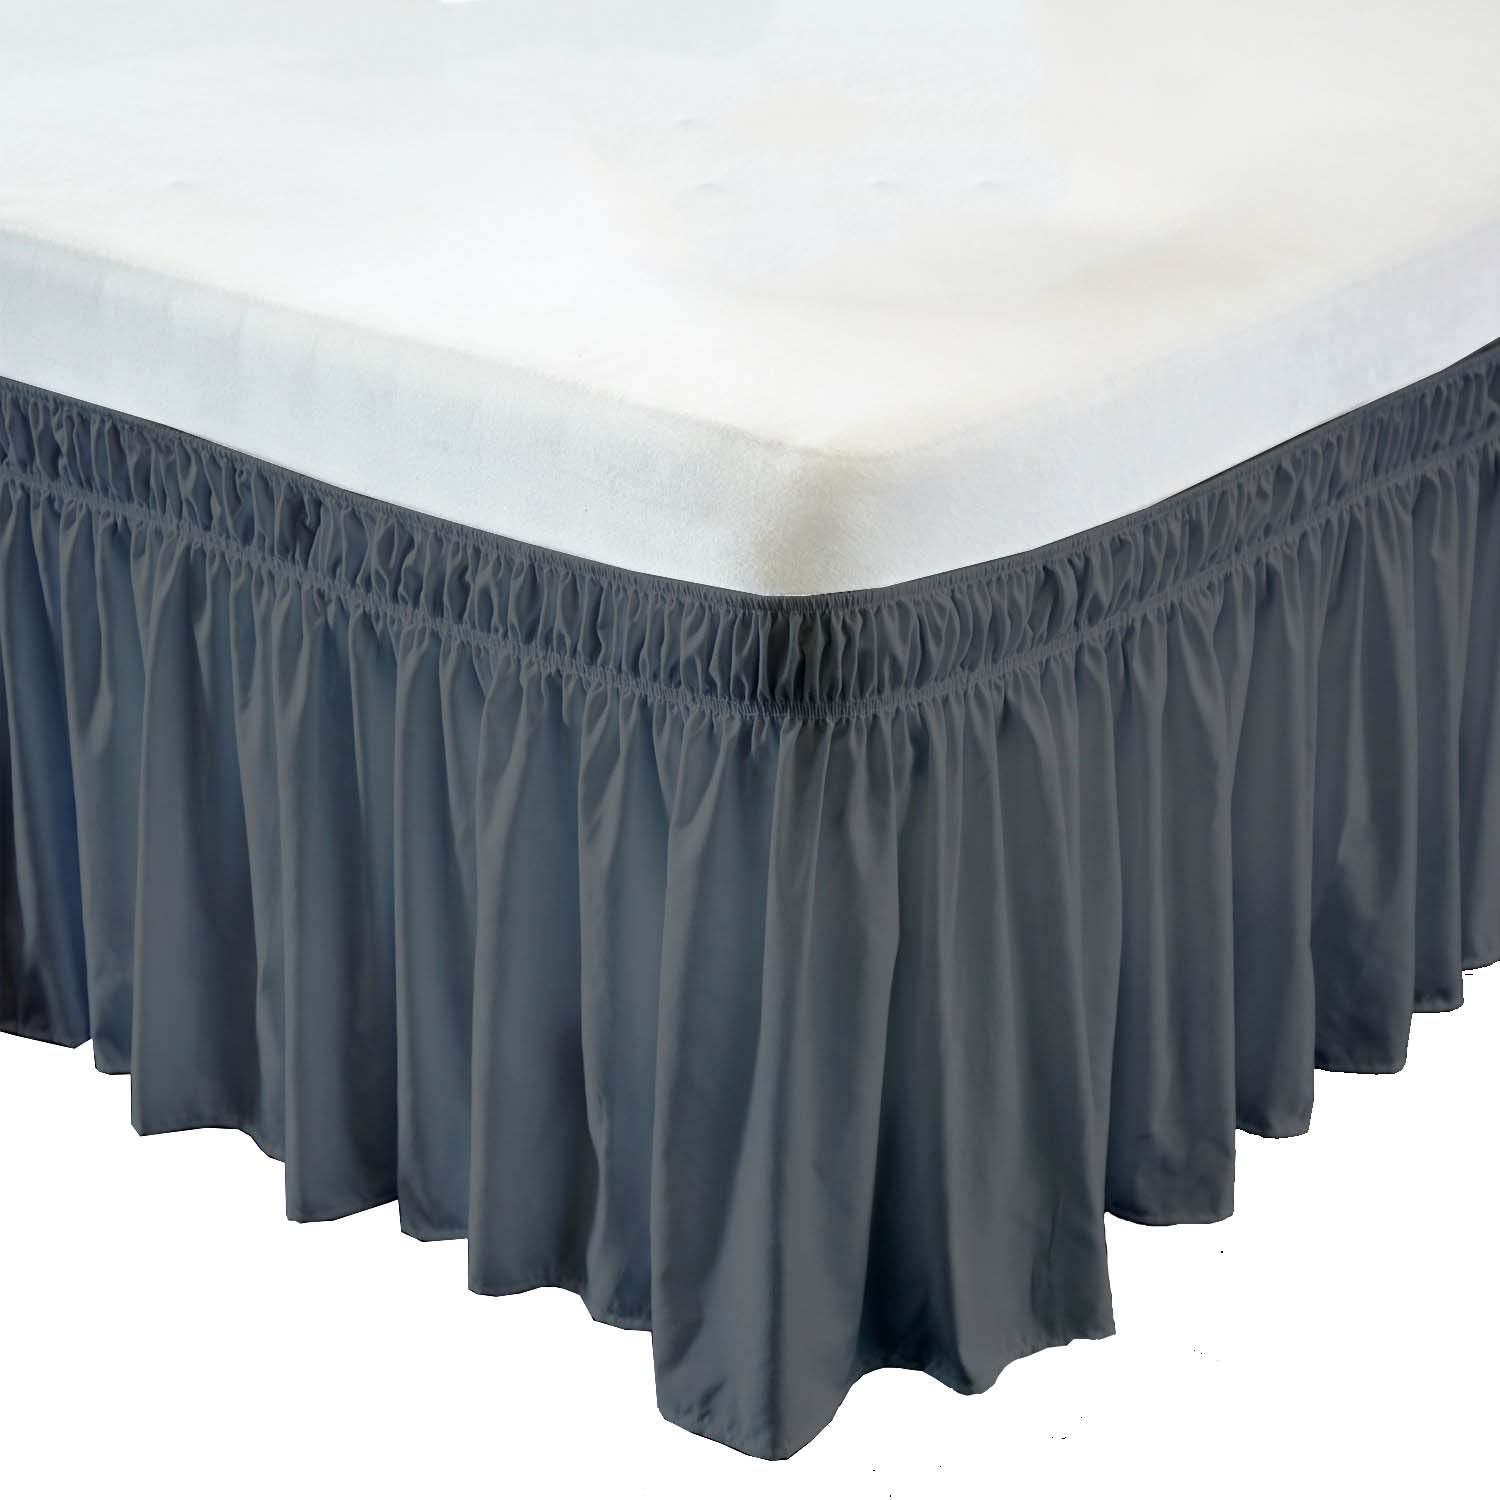 Wrap Around Bed Skirt- 12 Inch Drop Length Style Easy Fit Elastic Bed Ruffles Bed-Skirt Wrinkle Free Bed Skirt - Dark Grey, Cal-King in All Bed Sizes and Colors